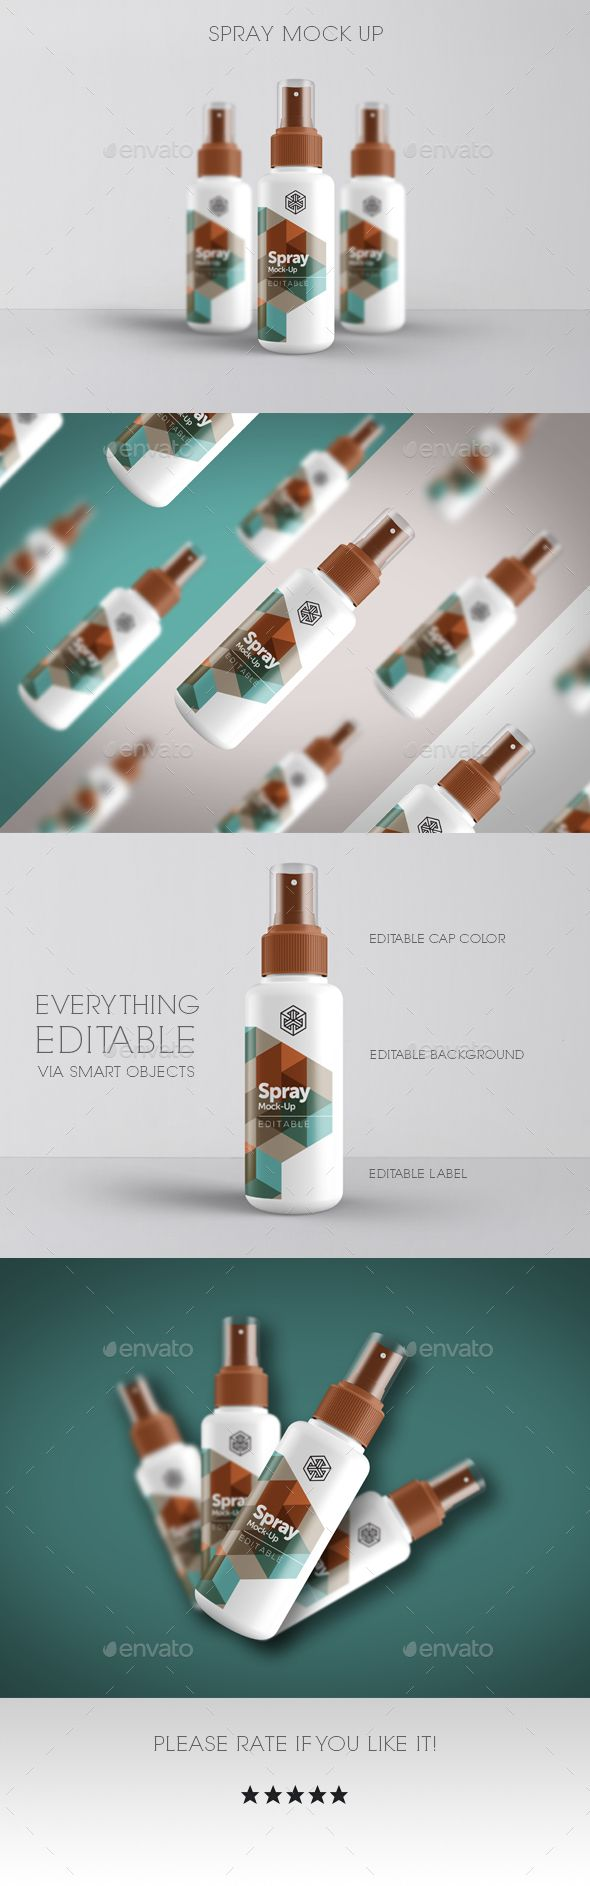 Spray Mock Up — Photoshop PSD #package #bottle • Available here → https://graphicriver.net/item/spray-mock-up/18876922?ref=pxcr